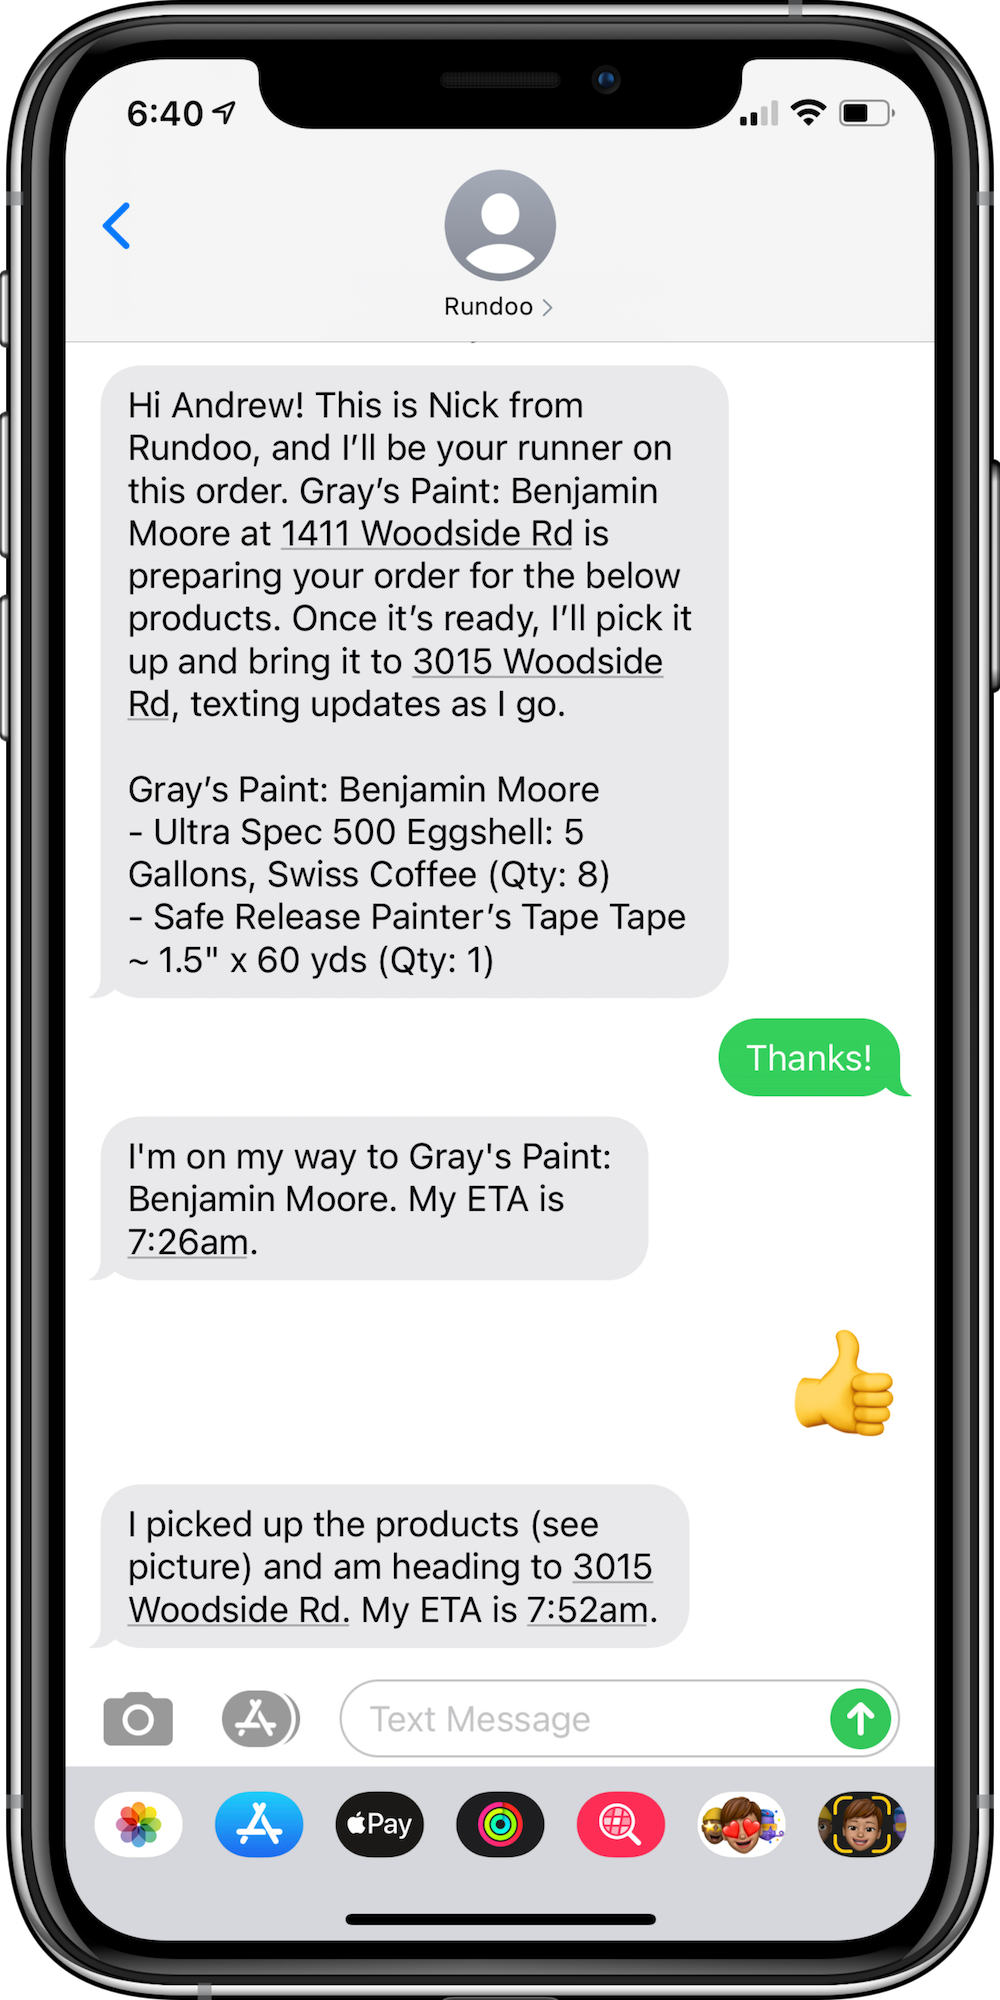 Phone screen showing text message conversation with delivery updates